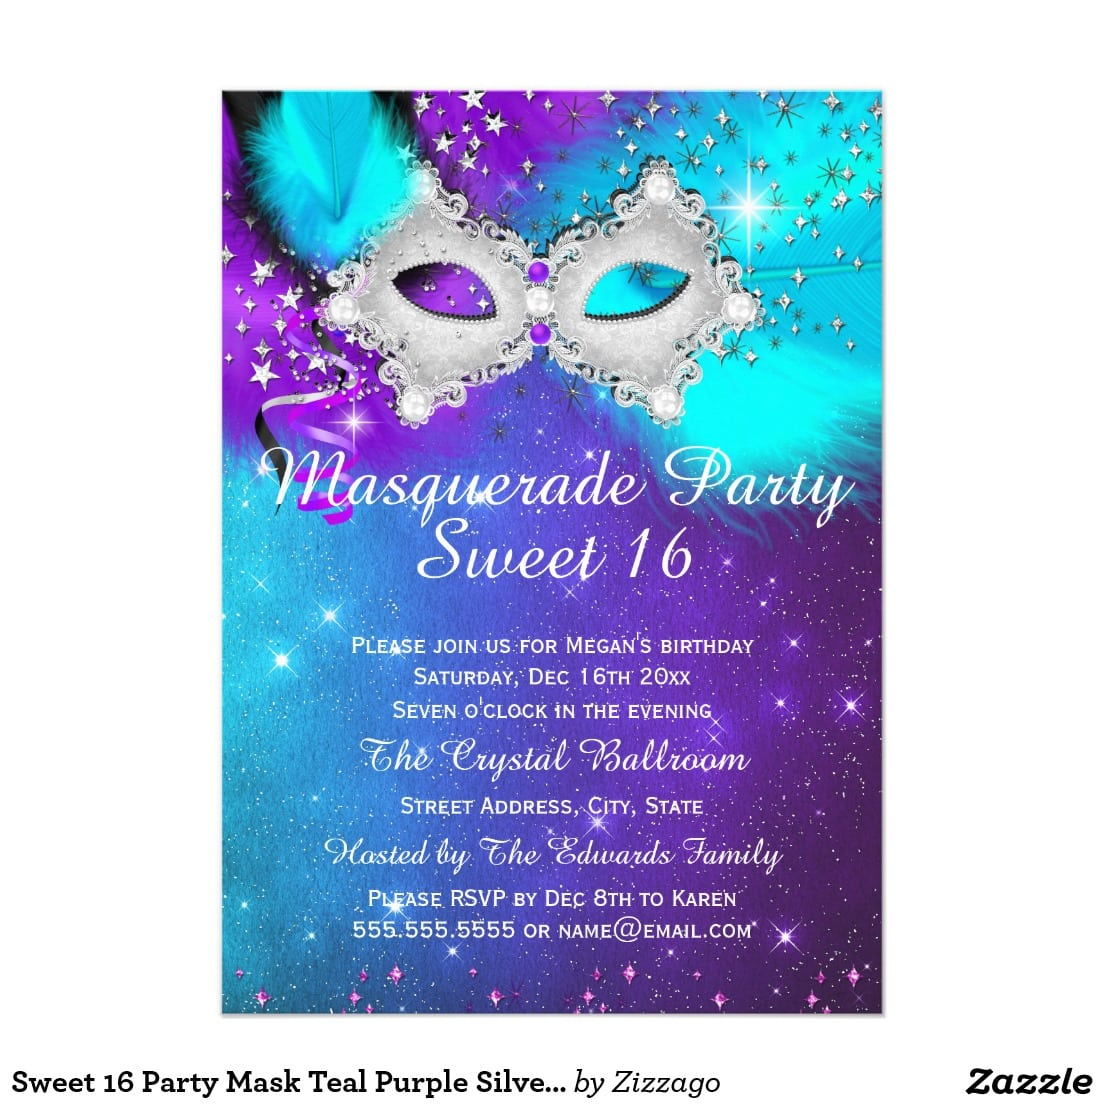 Sweet 16 Party Mask Teal Purple Silver Masquerade 5x7 Paper